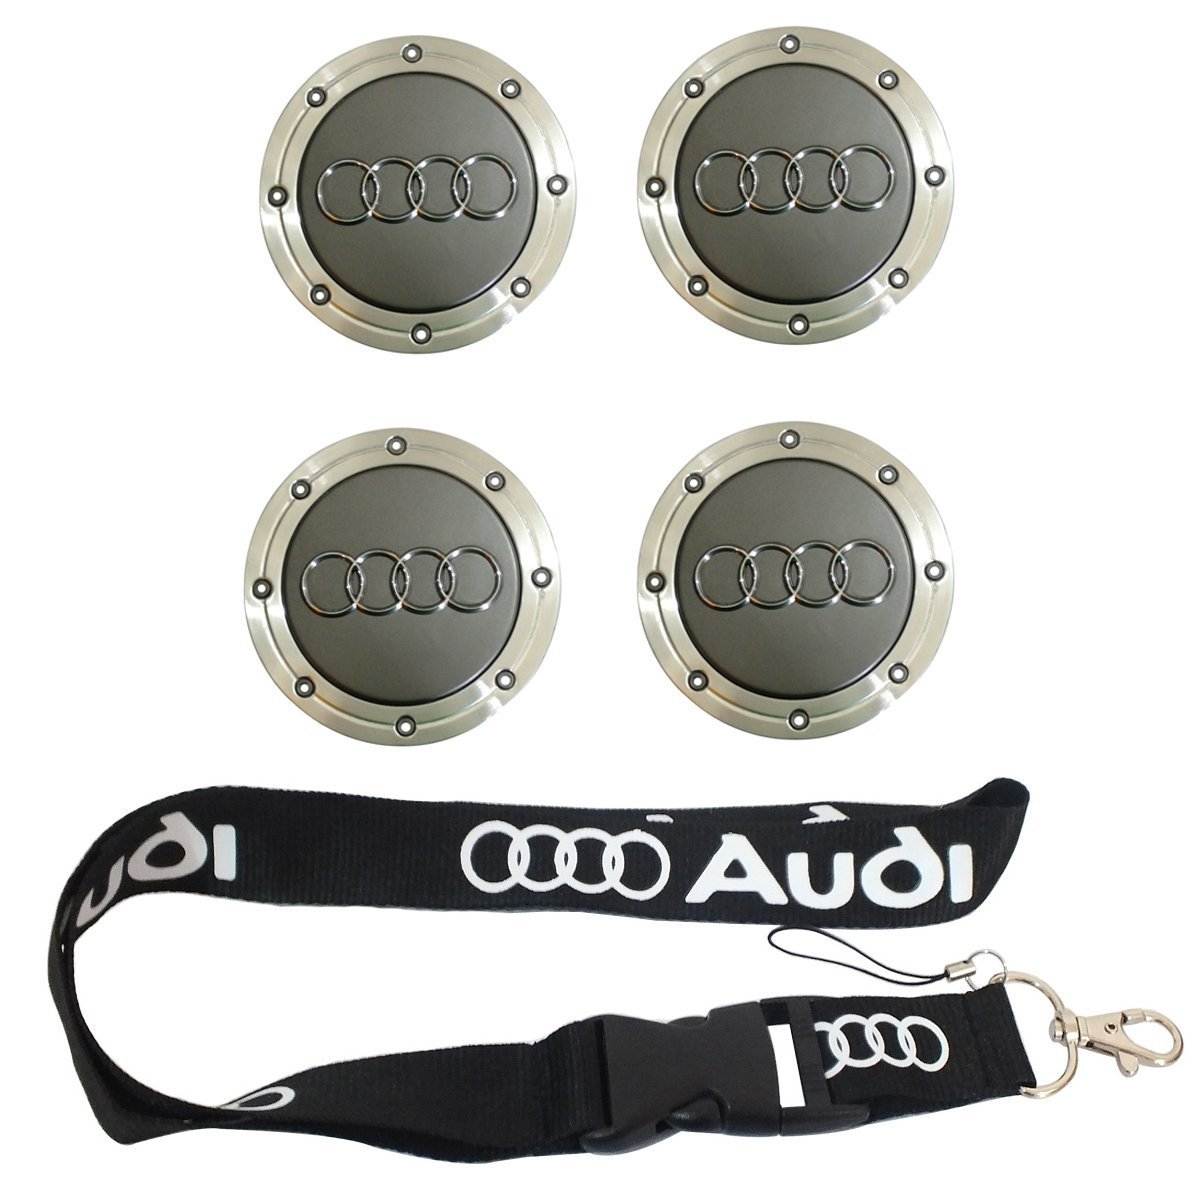 Nueva 1pcs Audi llavero Lanyard Badge Holder + 1 Set 4 ...